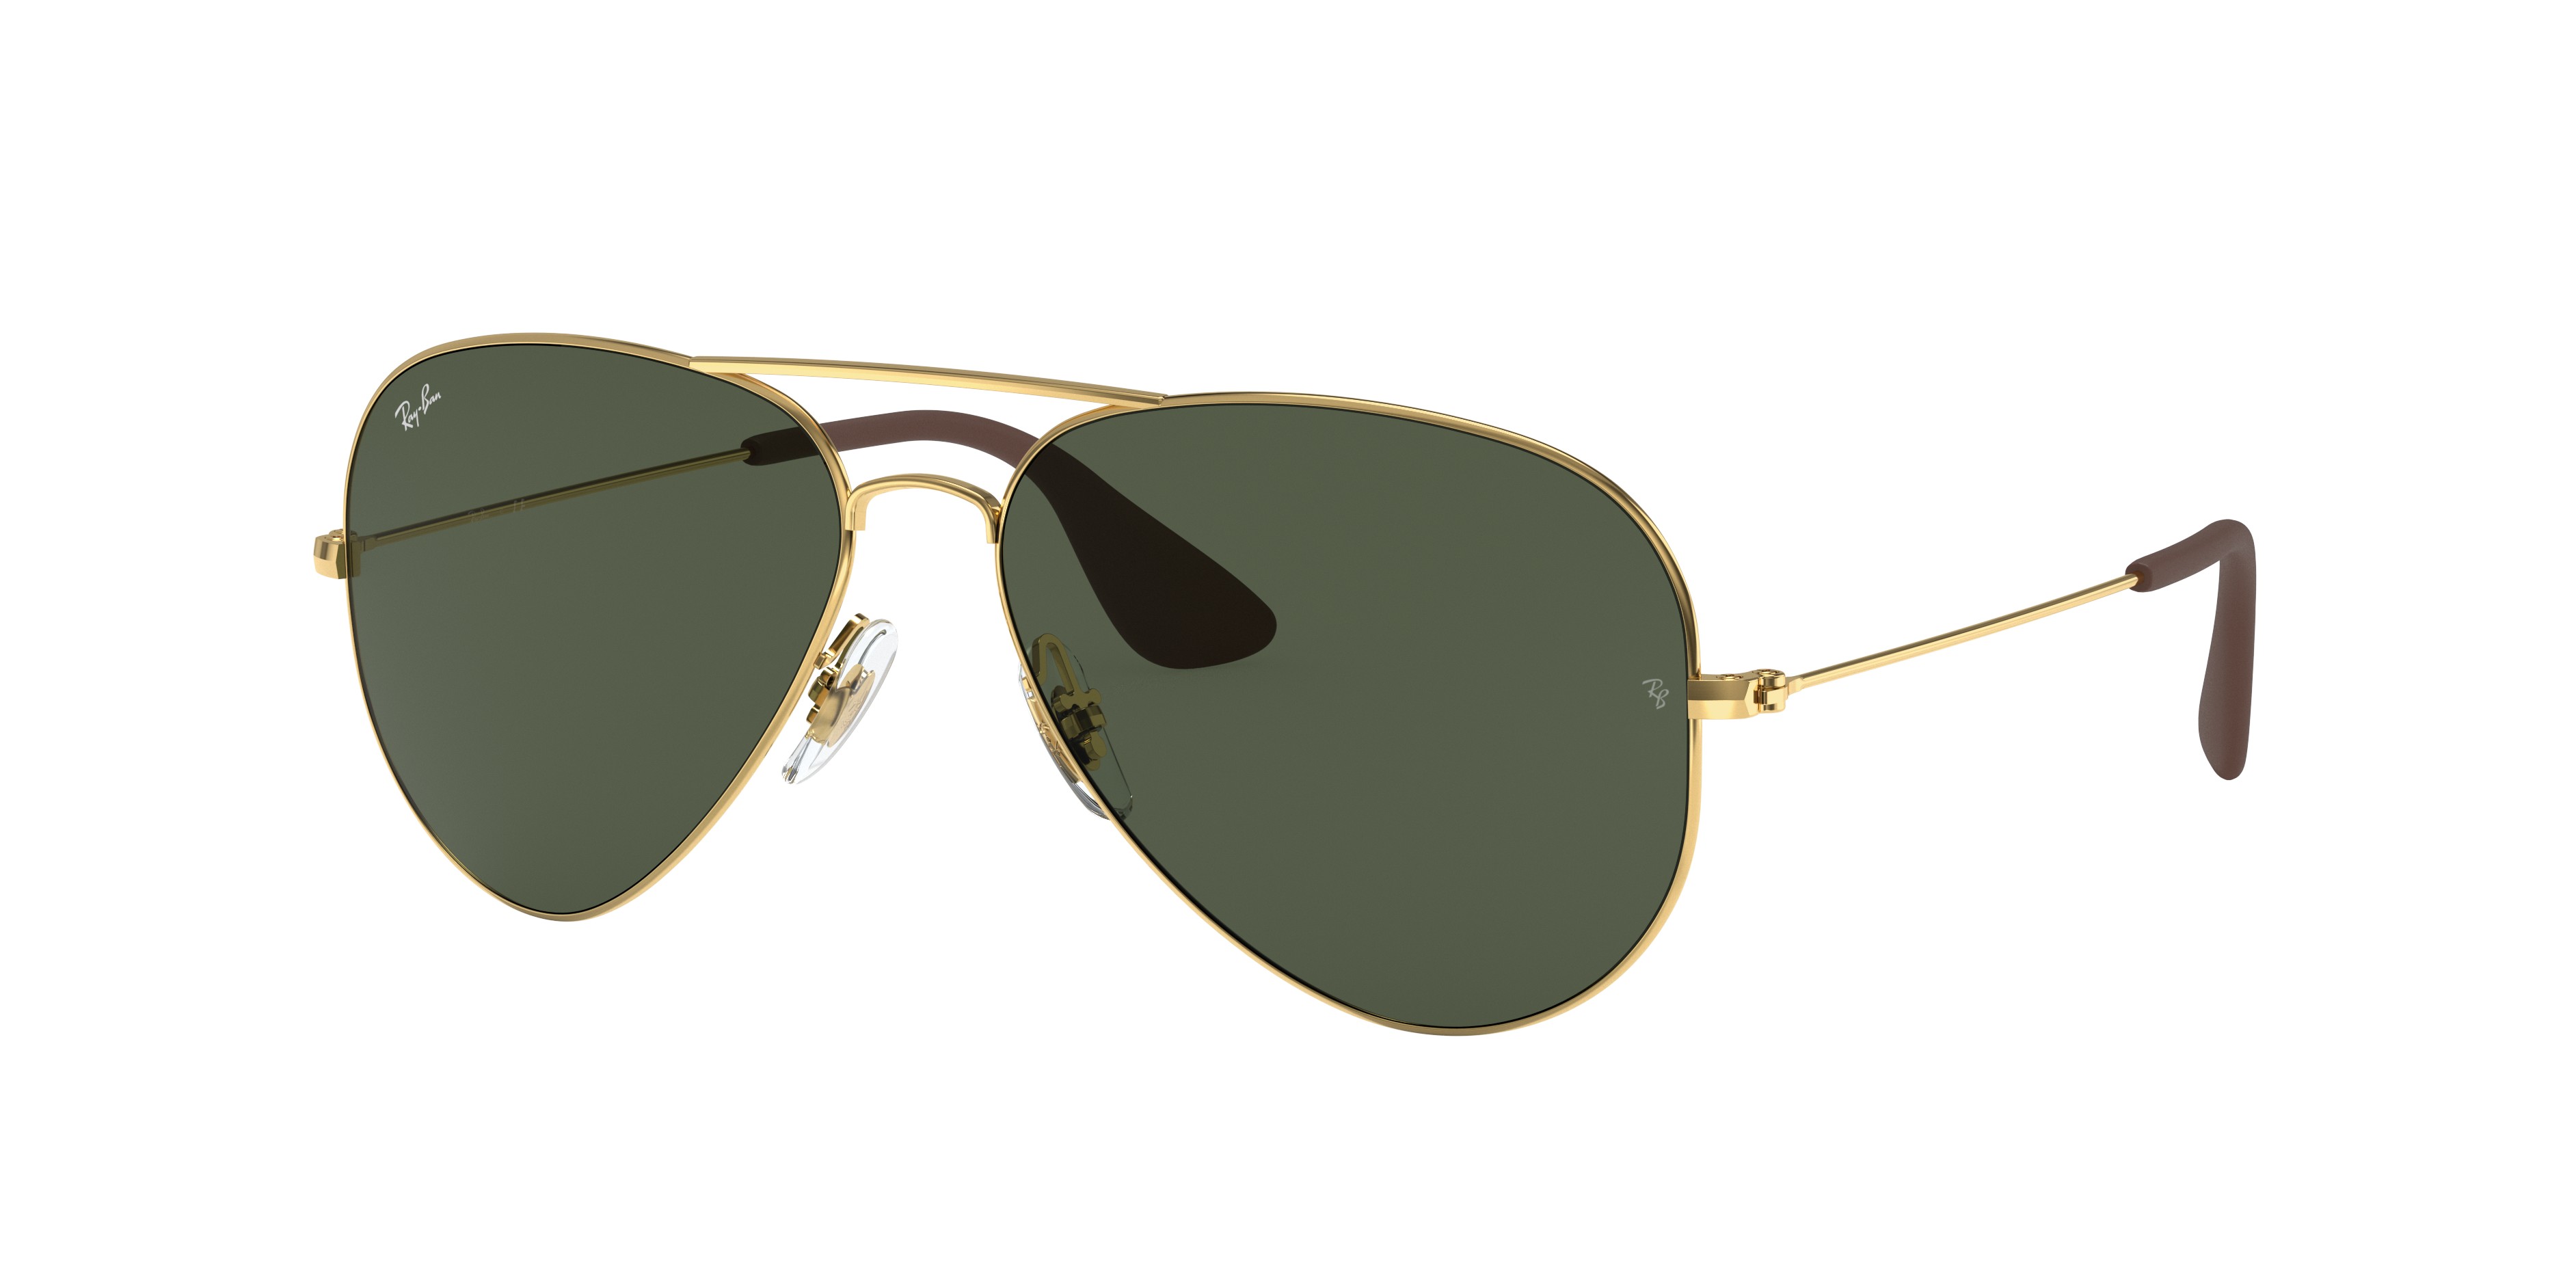 Ray-Ban Rb3558 Gold, Green Lenses - RB3558